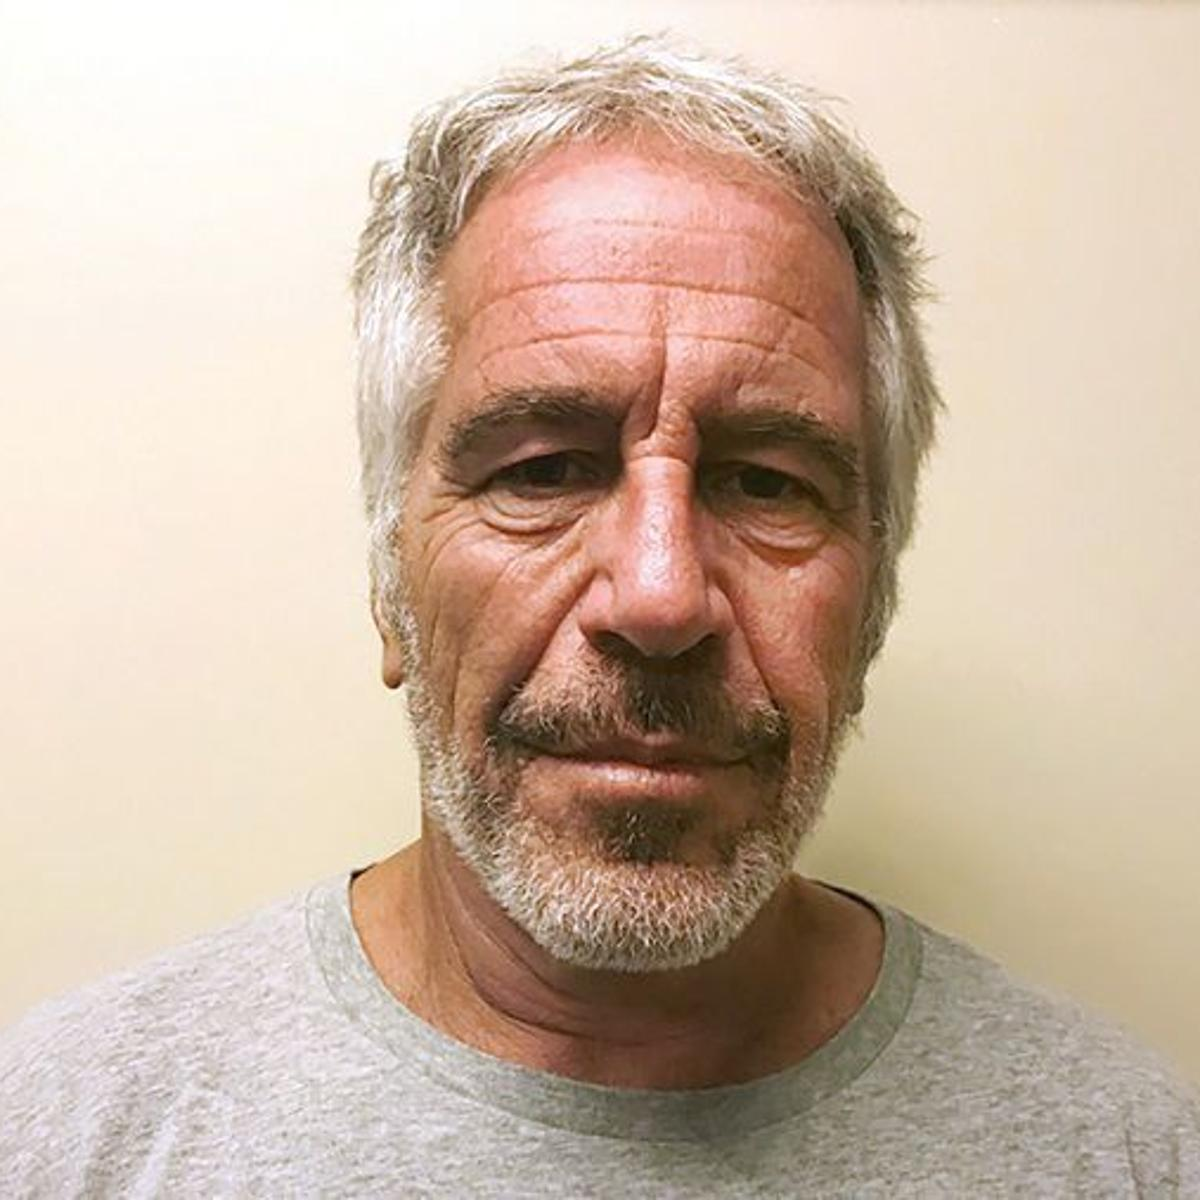 Monica Hesse: Epstein's accusers deserved to face him | Columnists